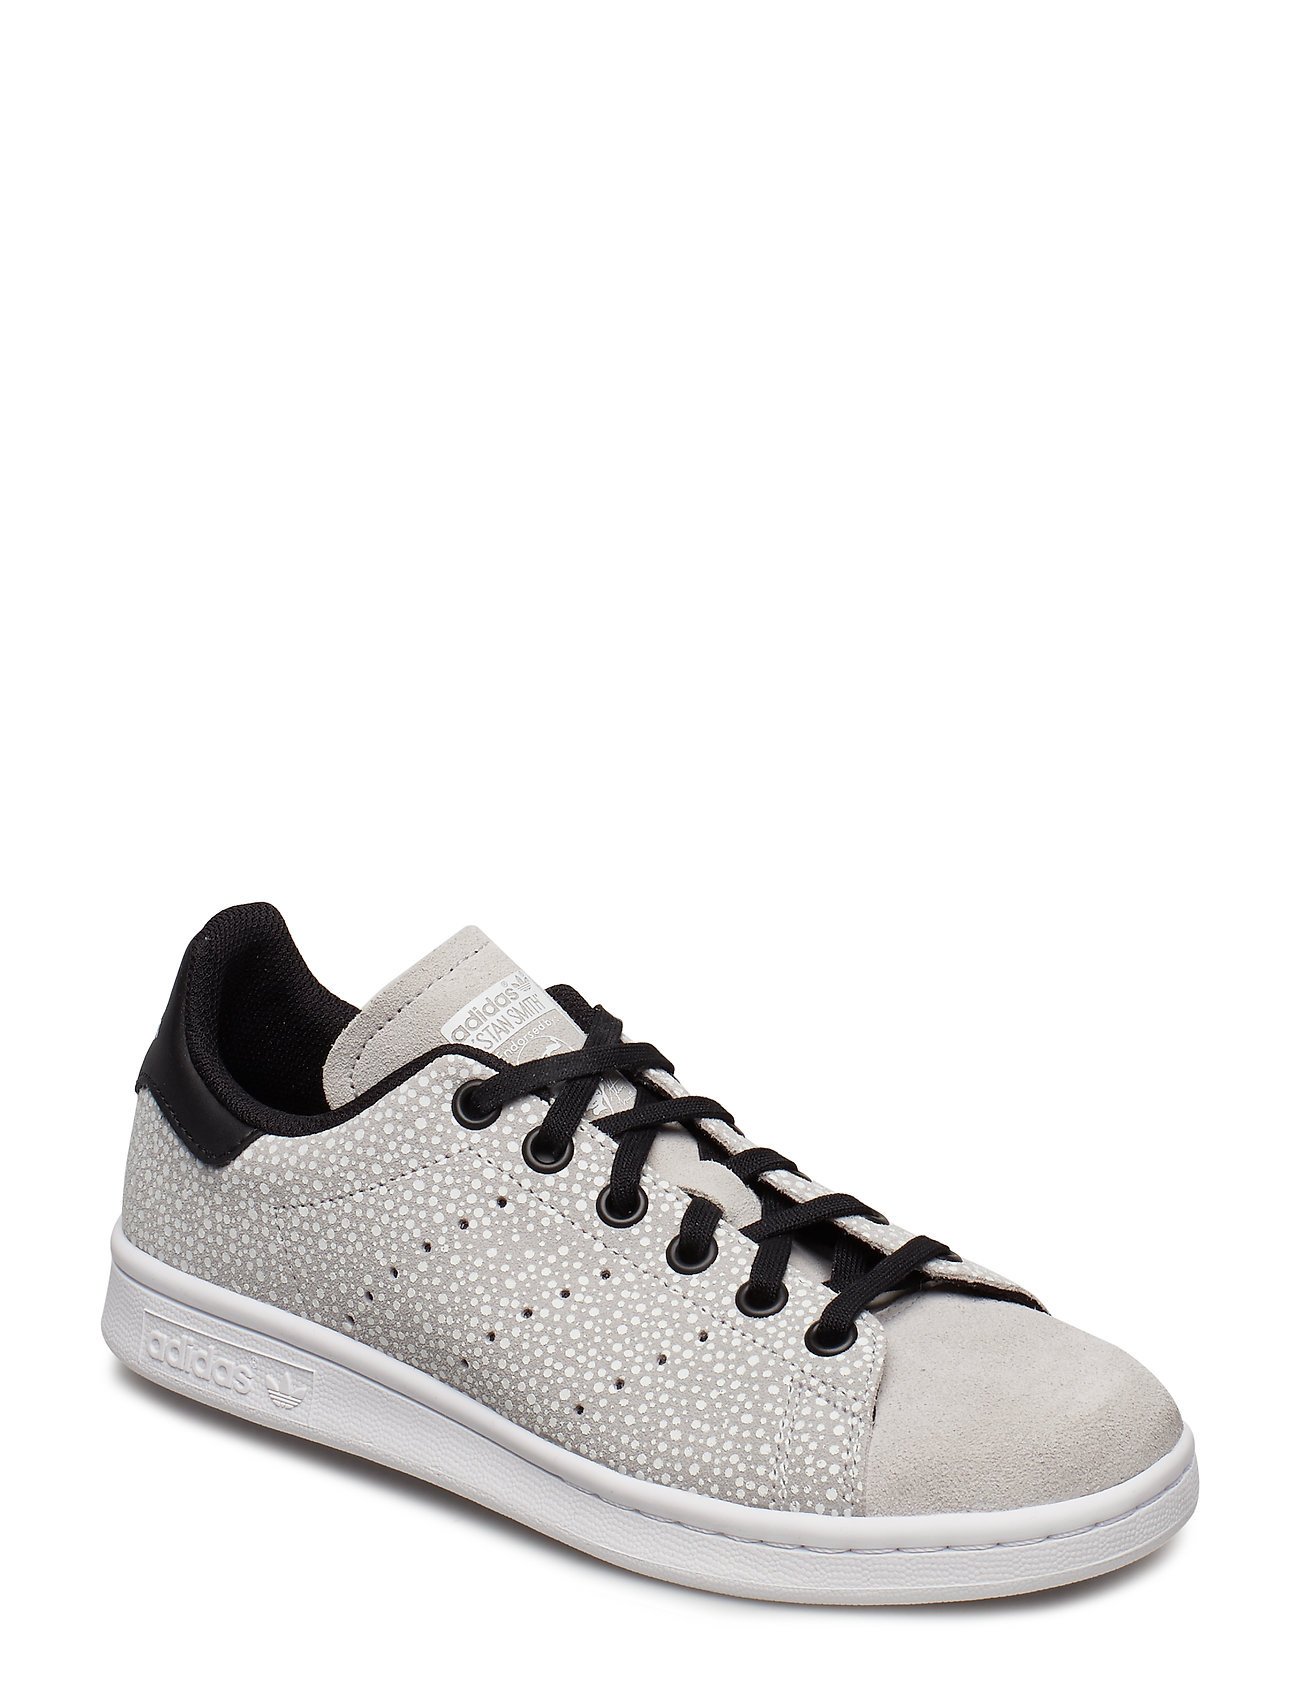 adidas Originals STAN SMITH J - GRETWO/GRETWO/CBLACK